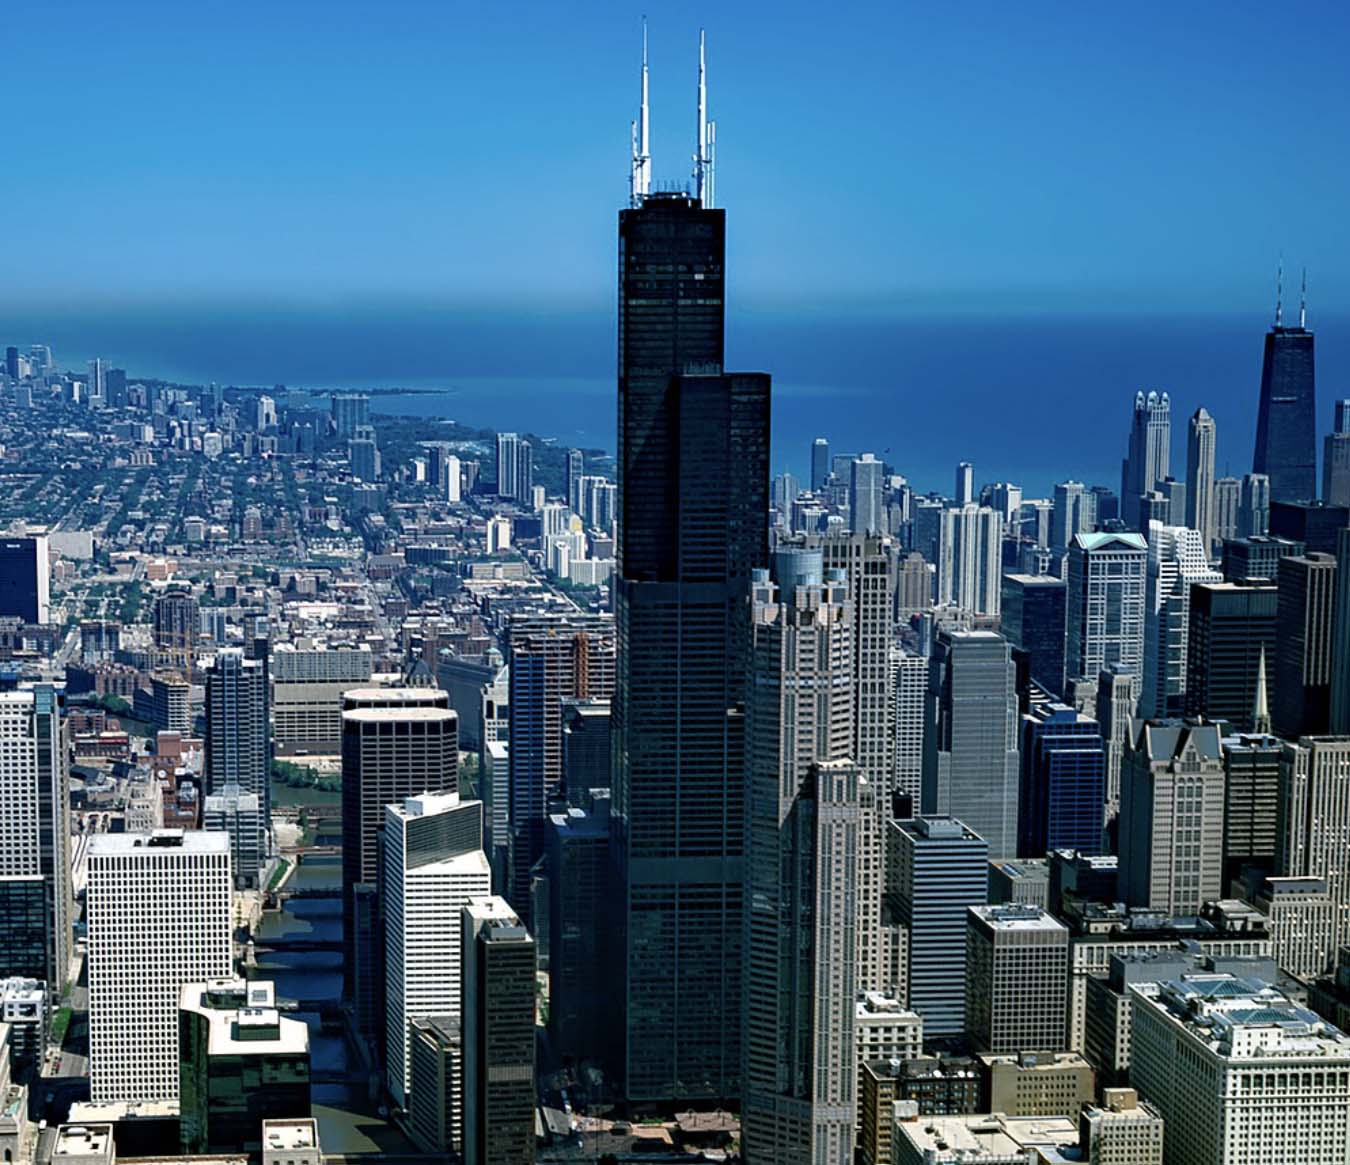 Things to Do in Chicago - Willis Tower